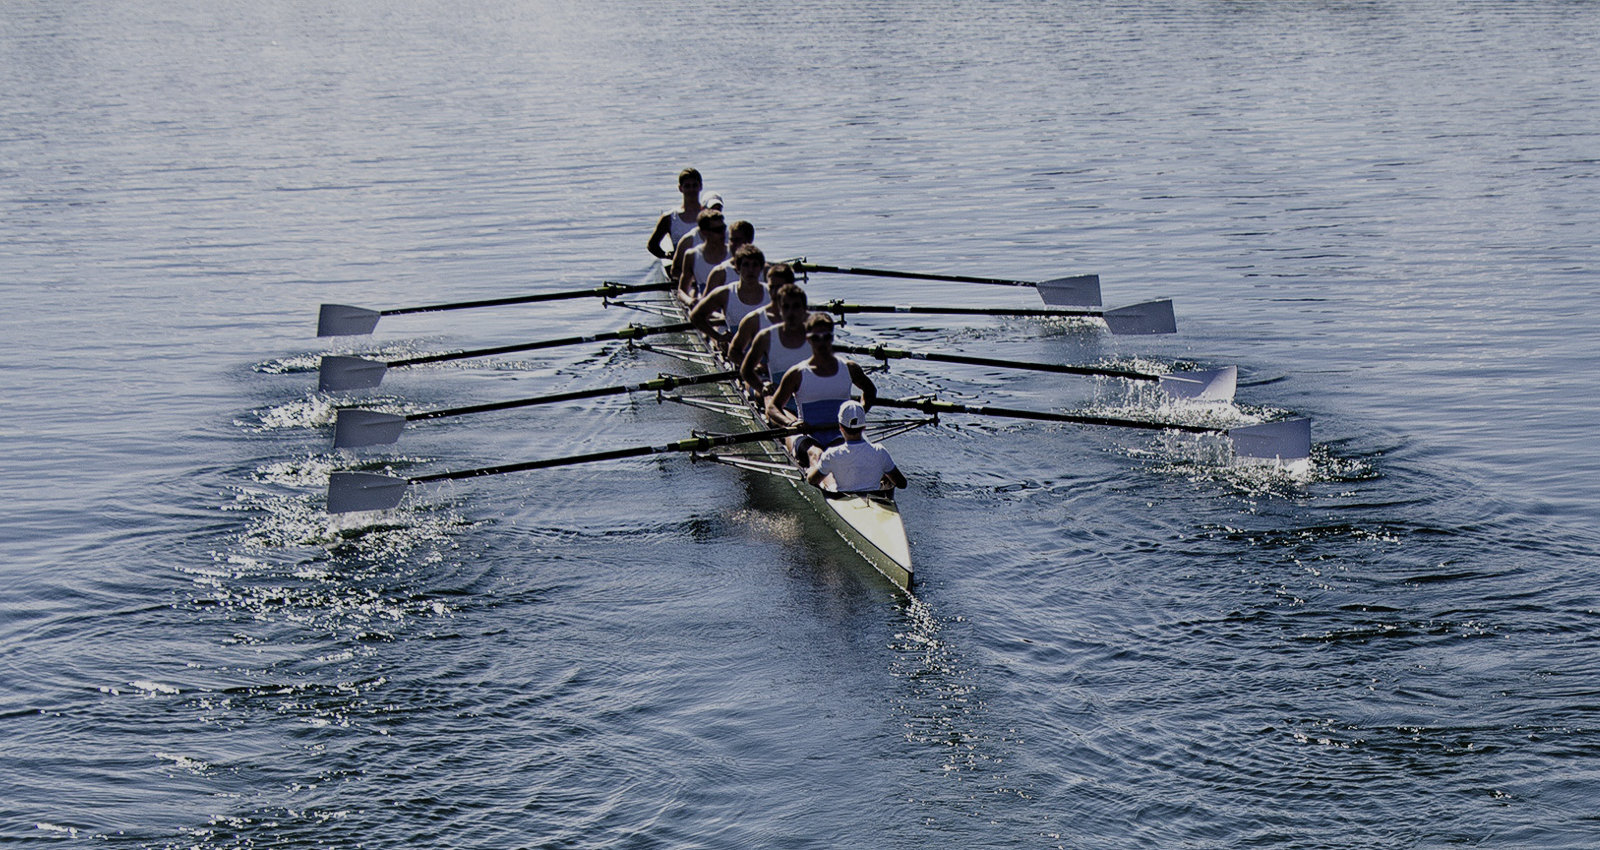 Are all of your team members actually pulling together in the same direction?